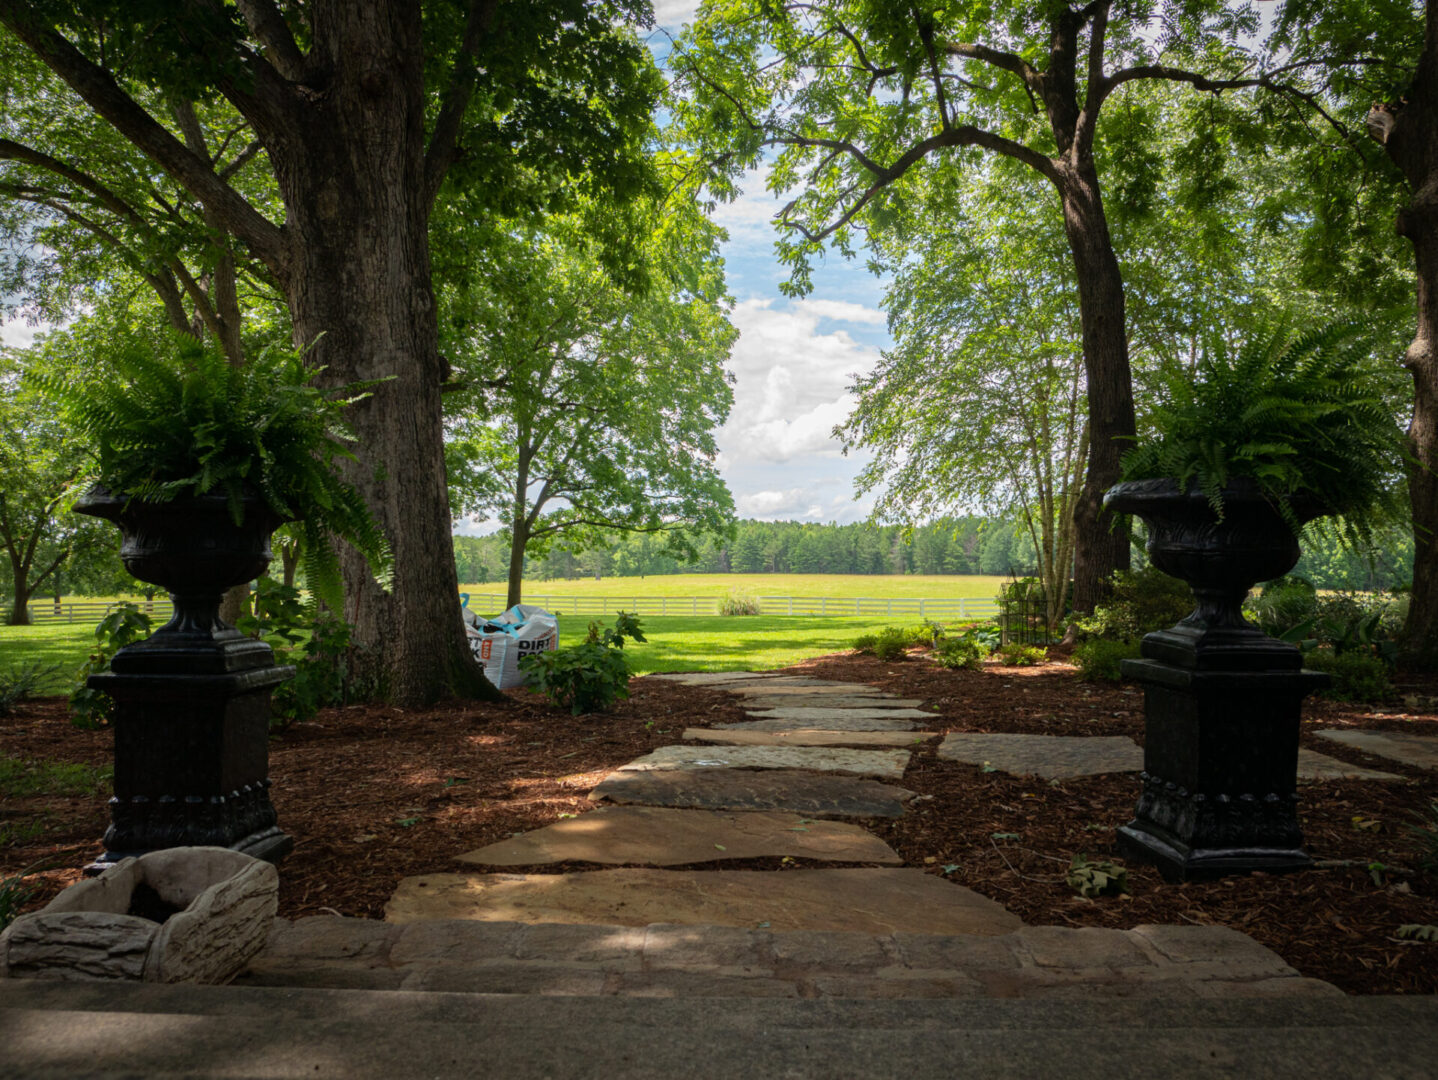 Gorgeous view overlooking open fields at Serenata Farm in Madison, GA